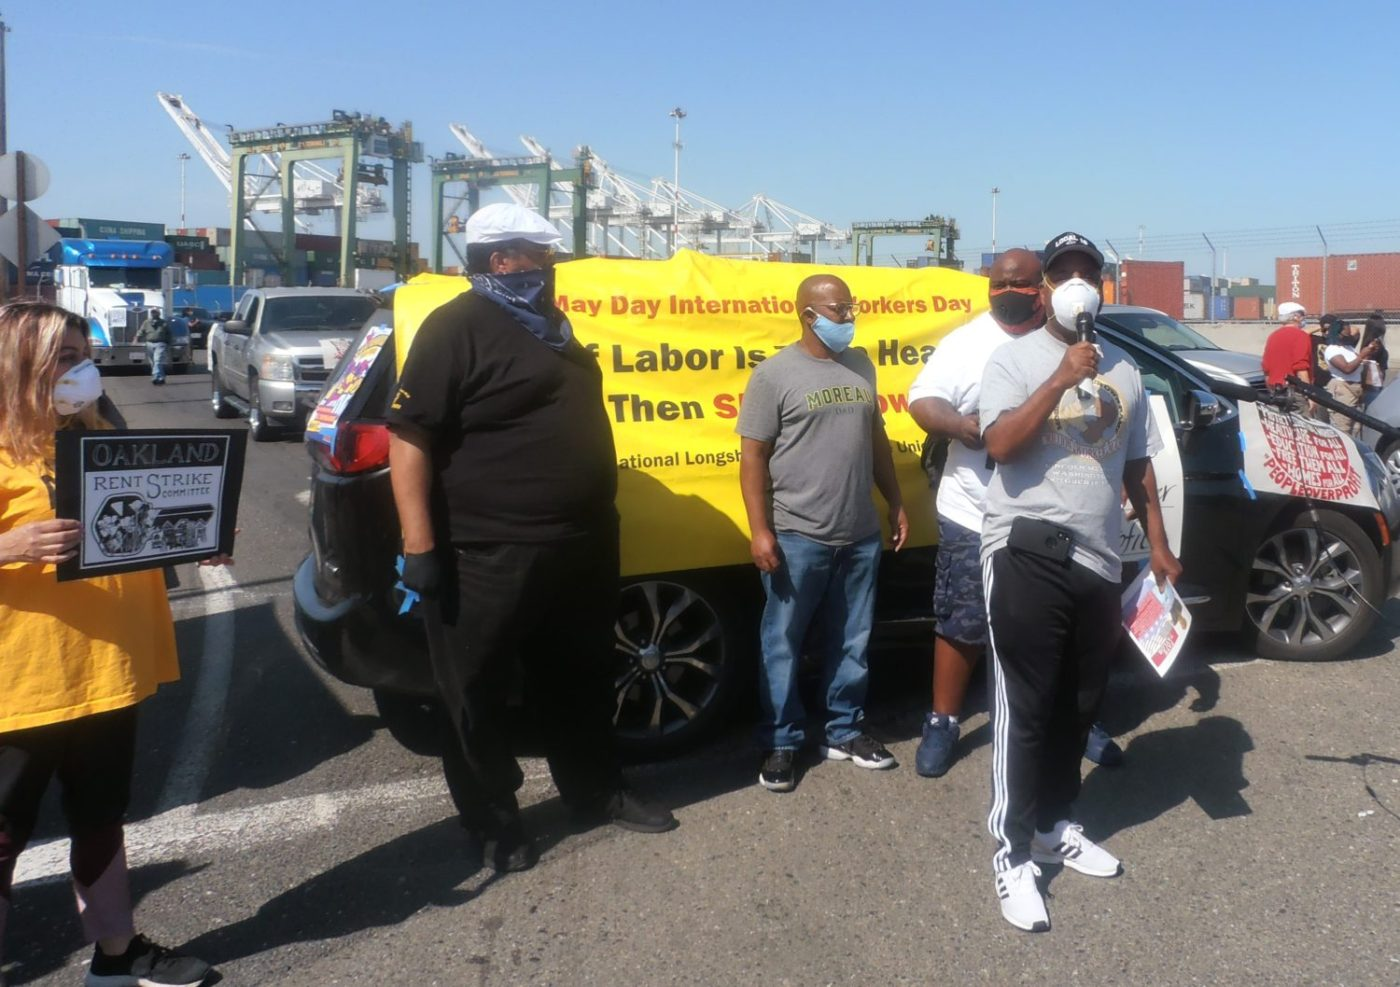 ILWU-Local-10-Pres.-Trent-Willis-speaks-International-Workers'-Day-rally-Port-of-Oakland-050120-by-Jahahara-1400x987, Advancing African liberation on the daily!, Culture Currents